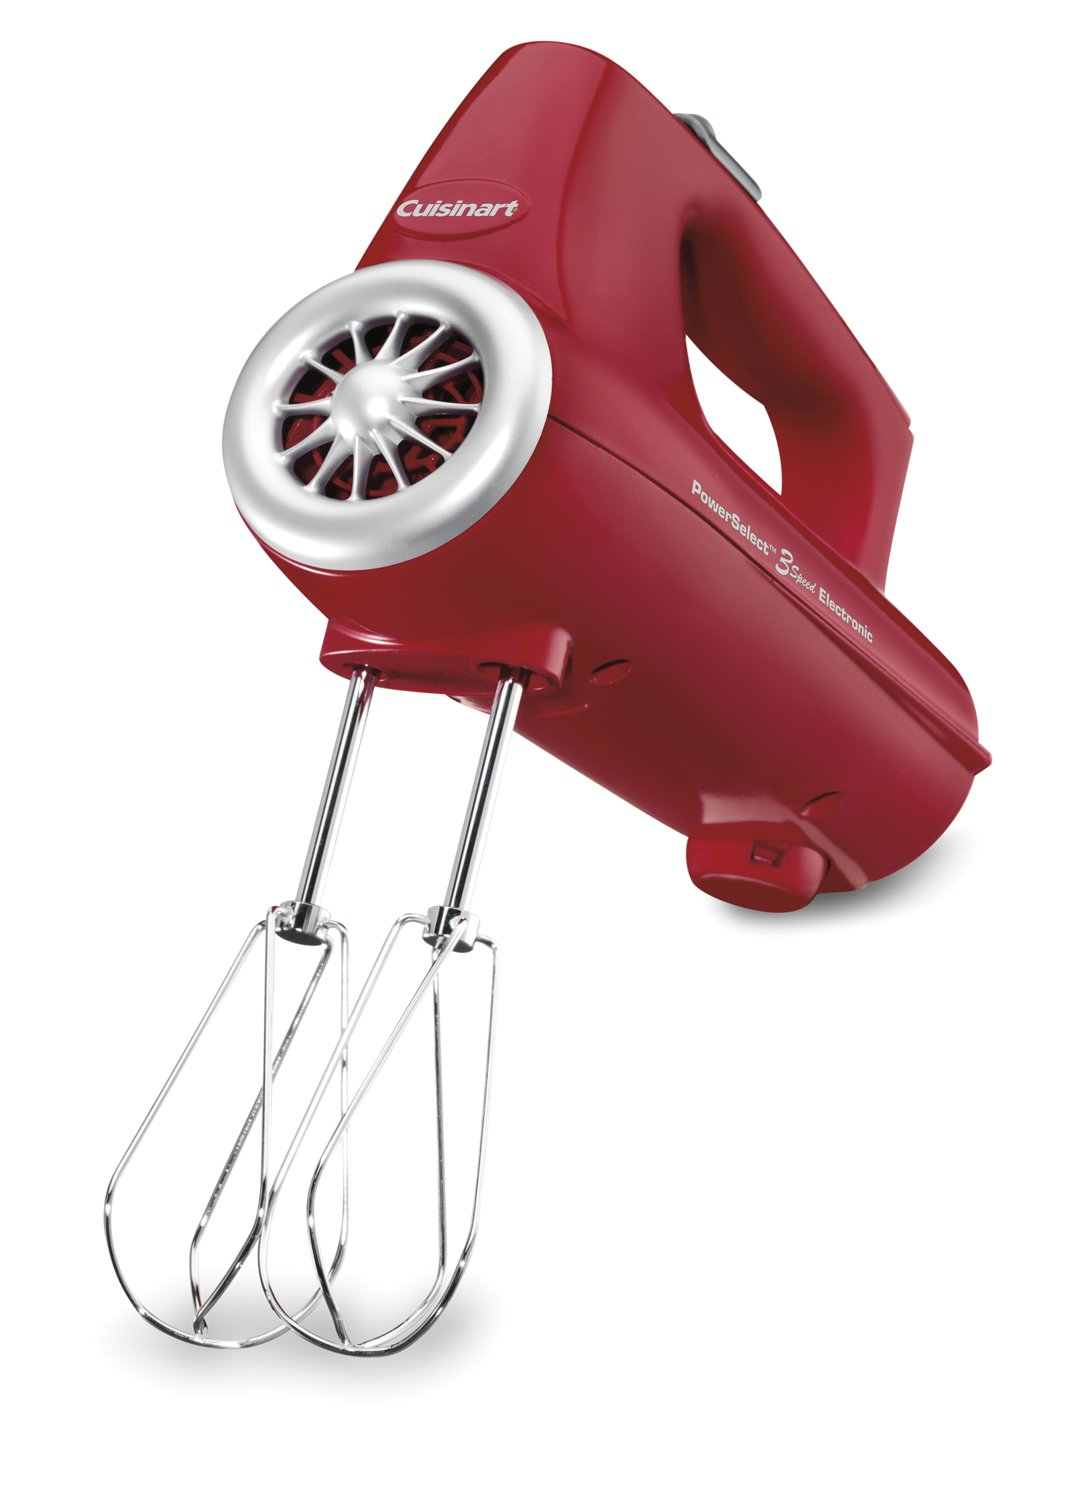 Amazon.com: Cuisinart CHM-3R Electronic Hand Mixer 3-Speed, Red ...